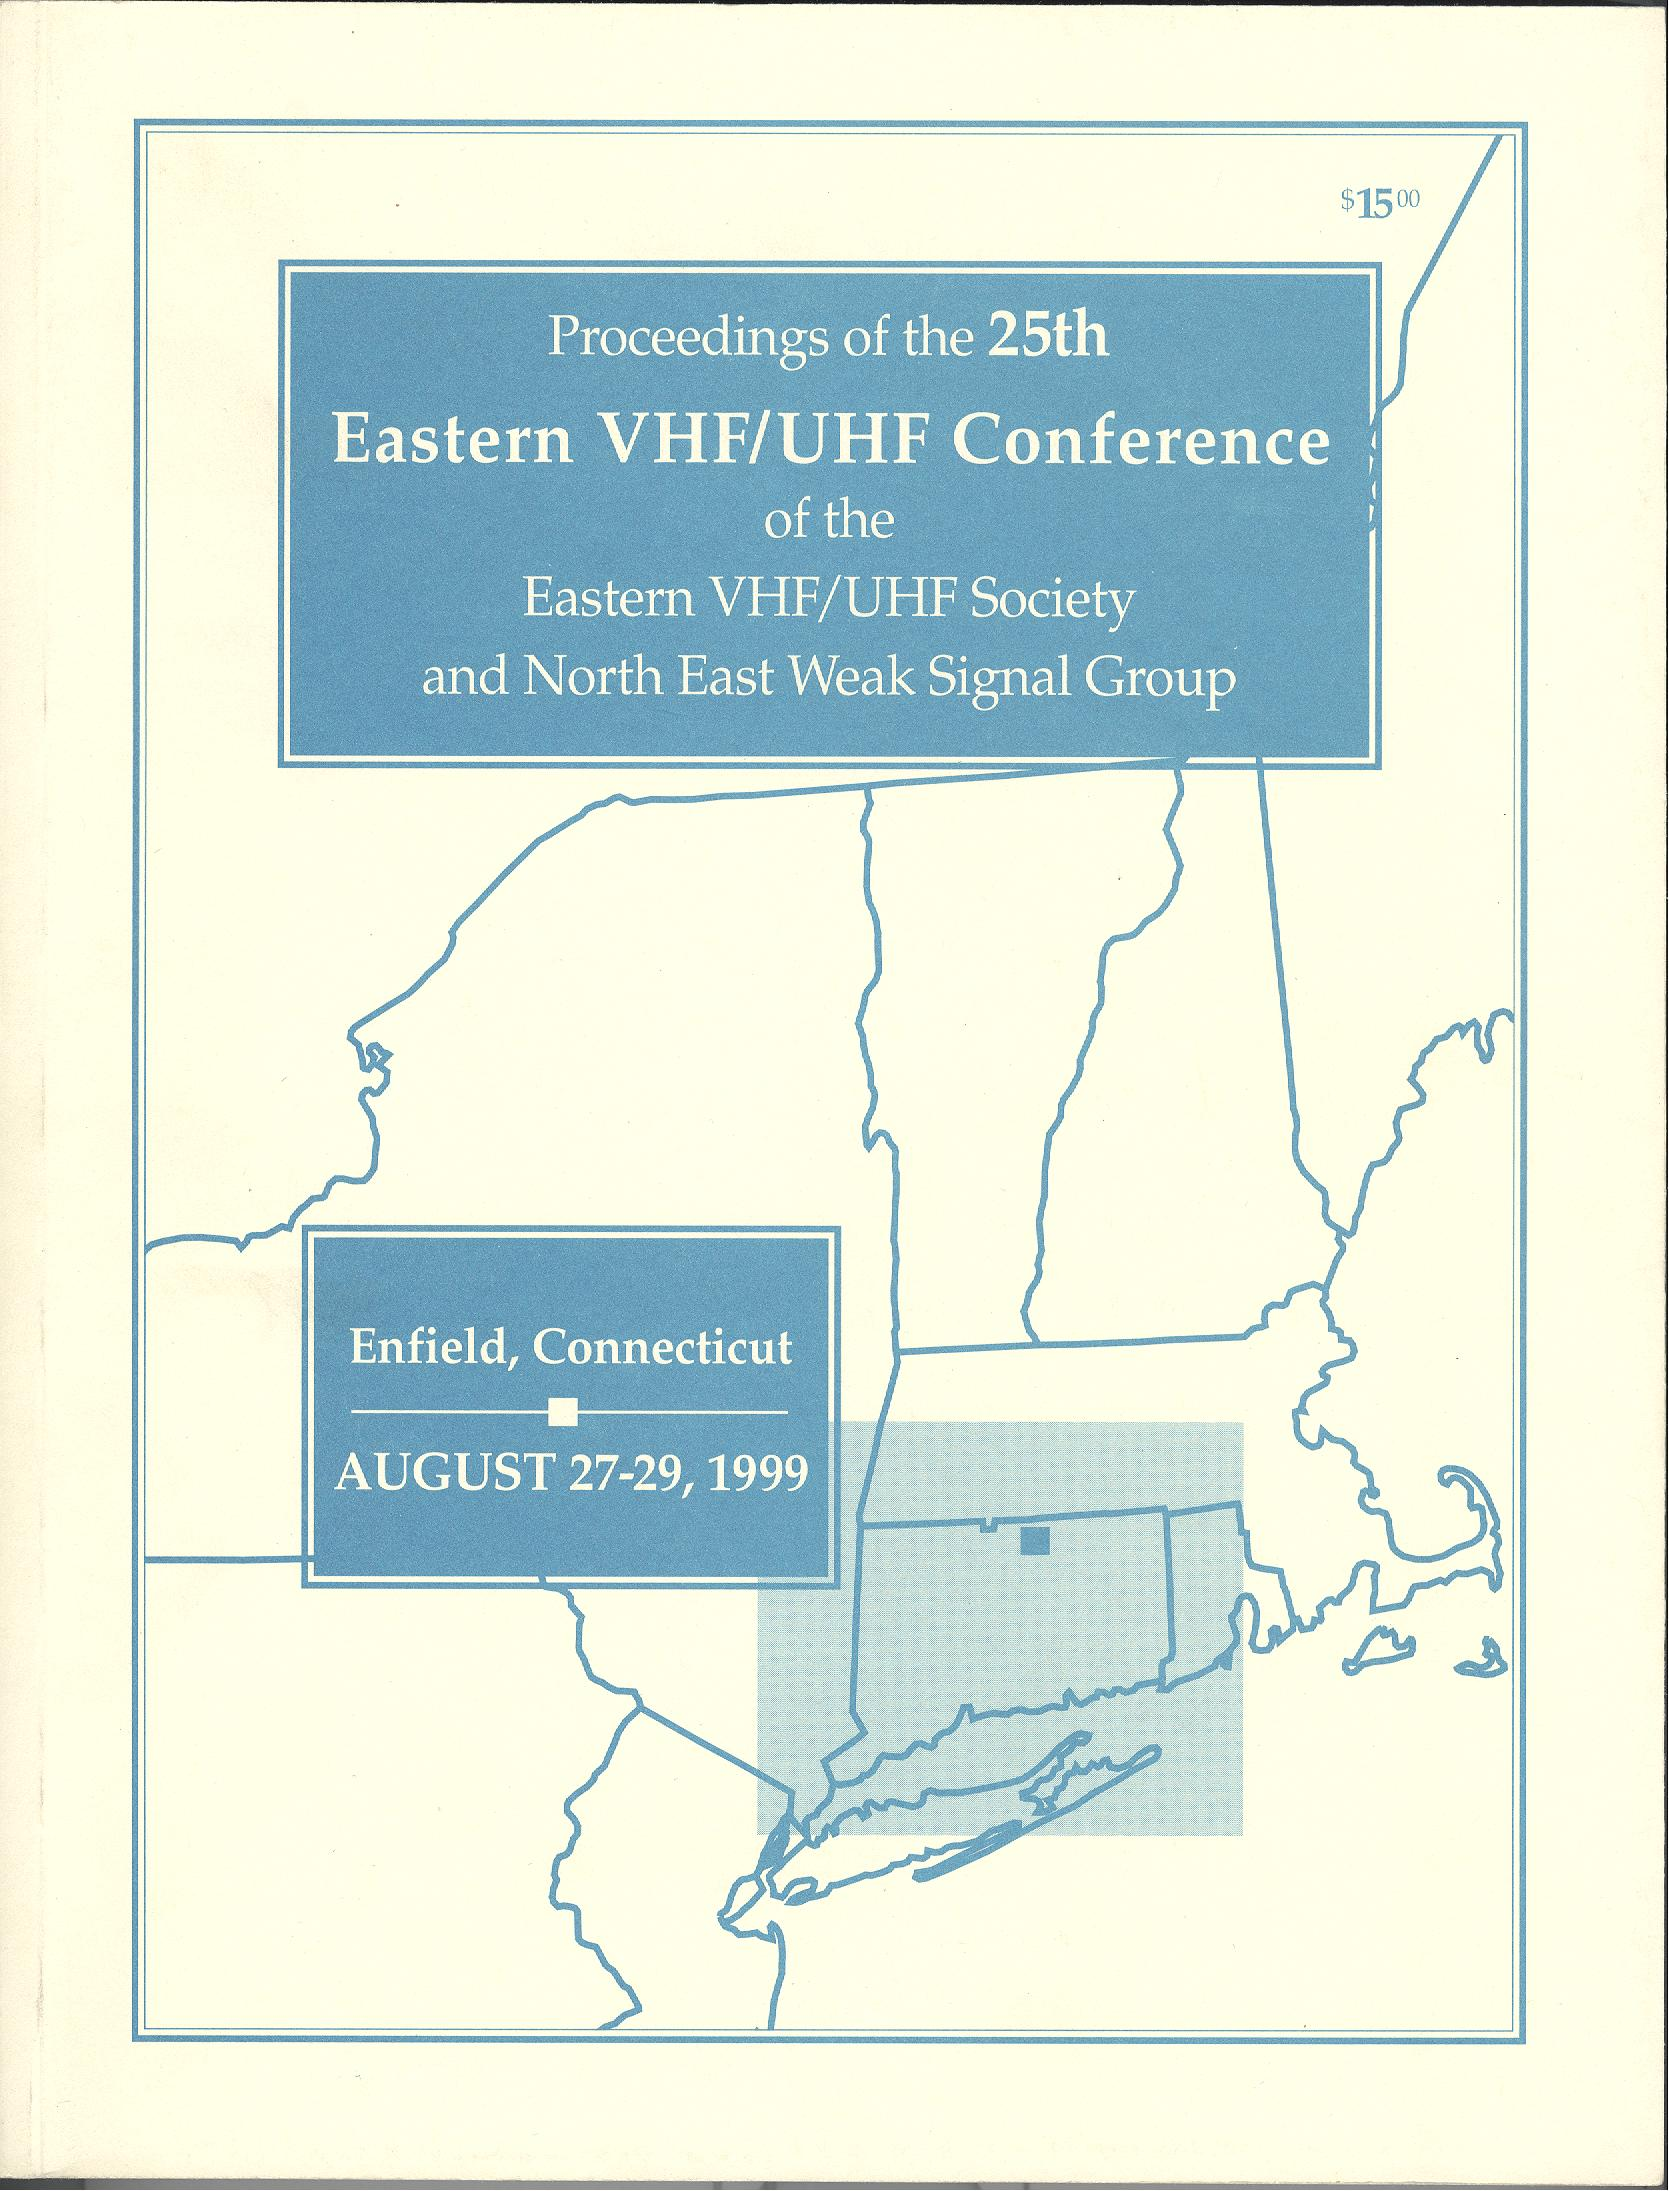 Proceedings of the Twenty-Fifth Eastern VHF/UHF Conference of the Eastern VHF/UHF Society and North East Weak Signal Group 1999